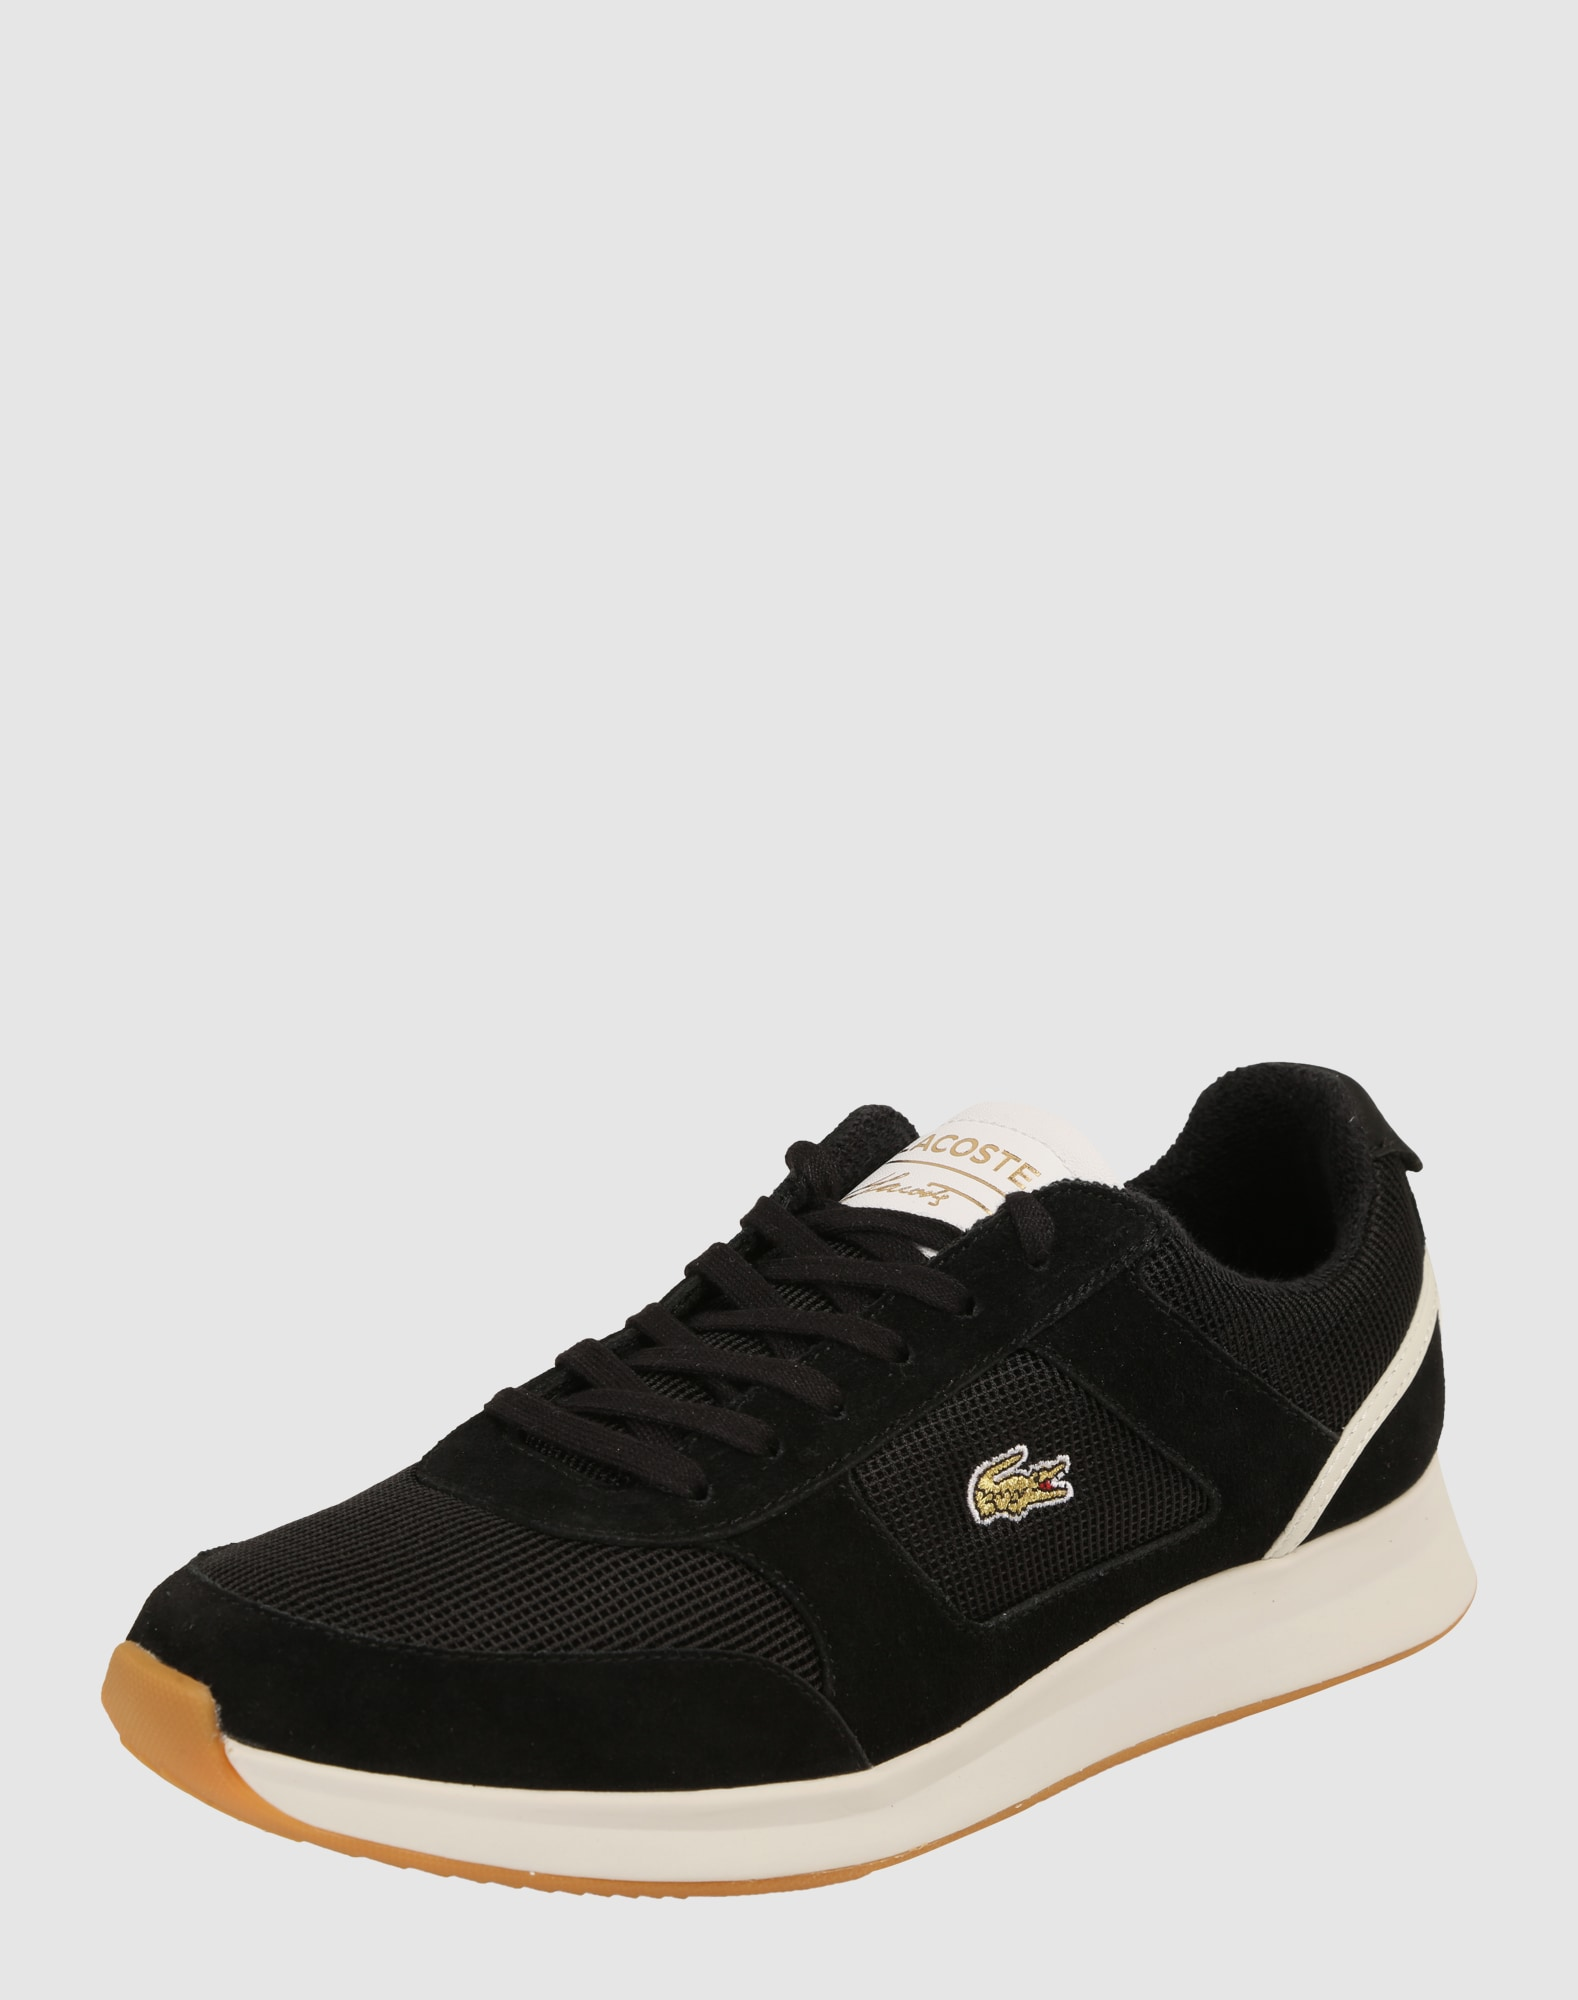 lacoste sneaker 39 jogguer 39 in schwarz about you. Black Bedroom Furniture Sets. Home Design Ideas